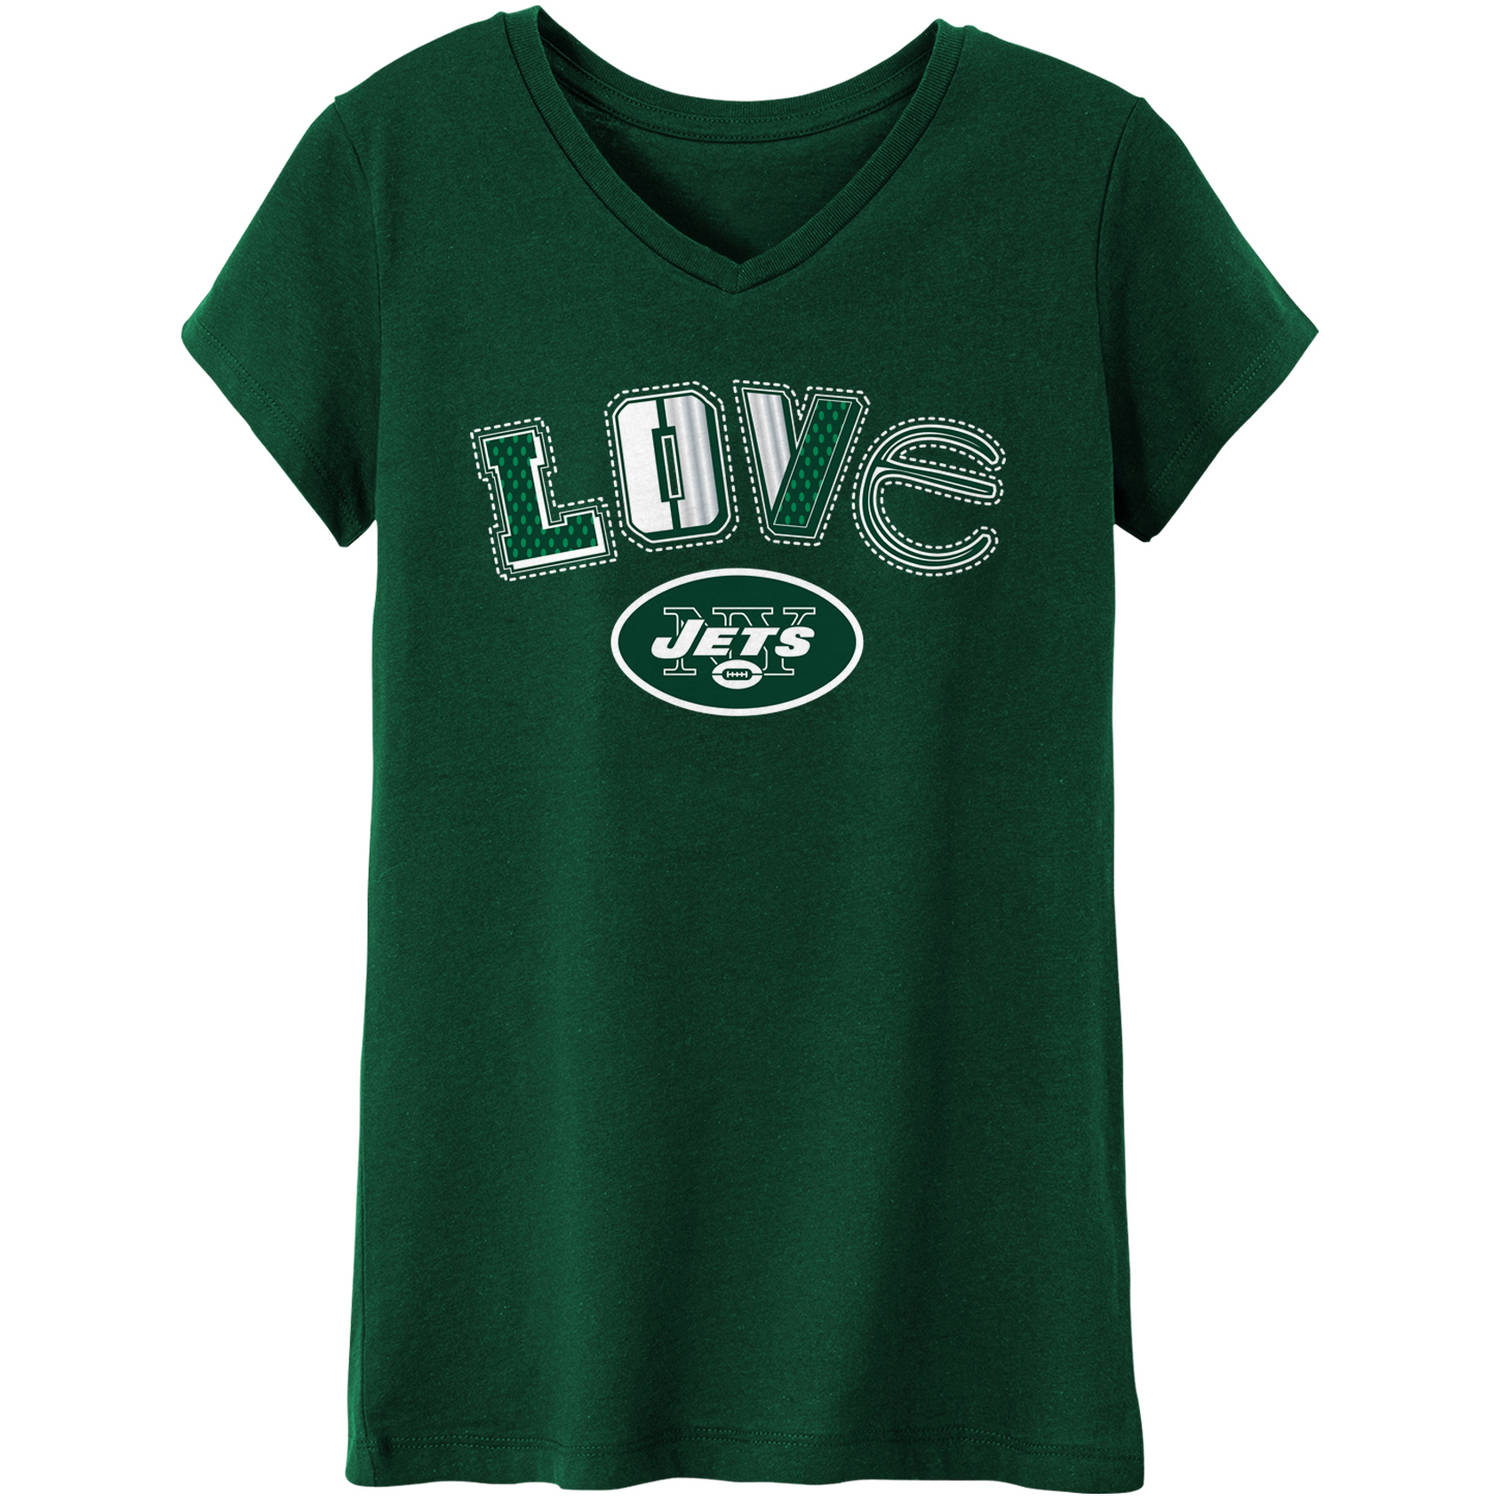 NFL New York Jets Girls Short Sleeve Cotton Tee